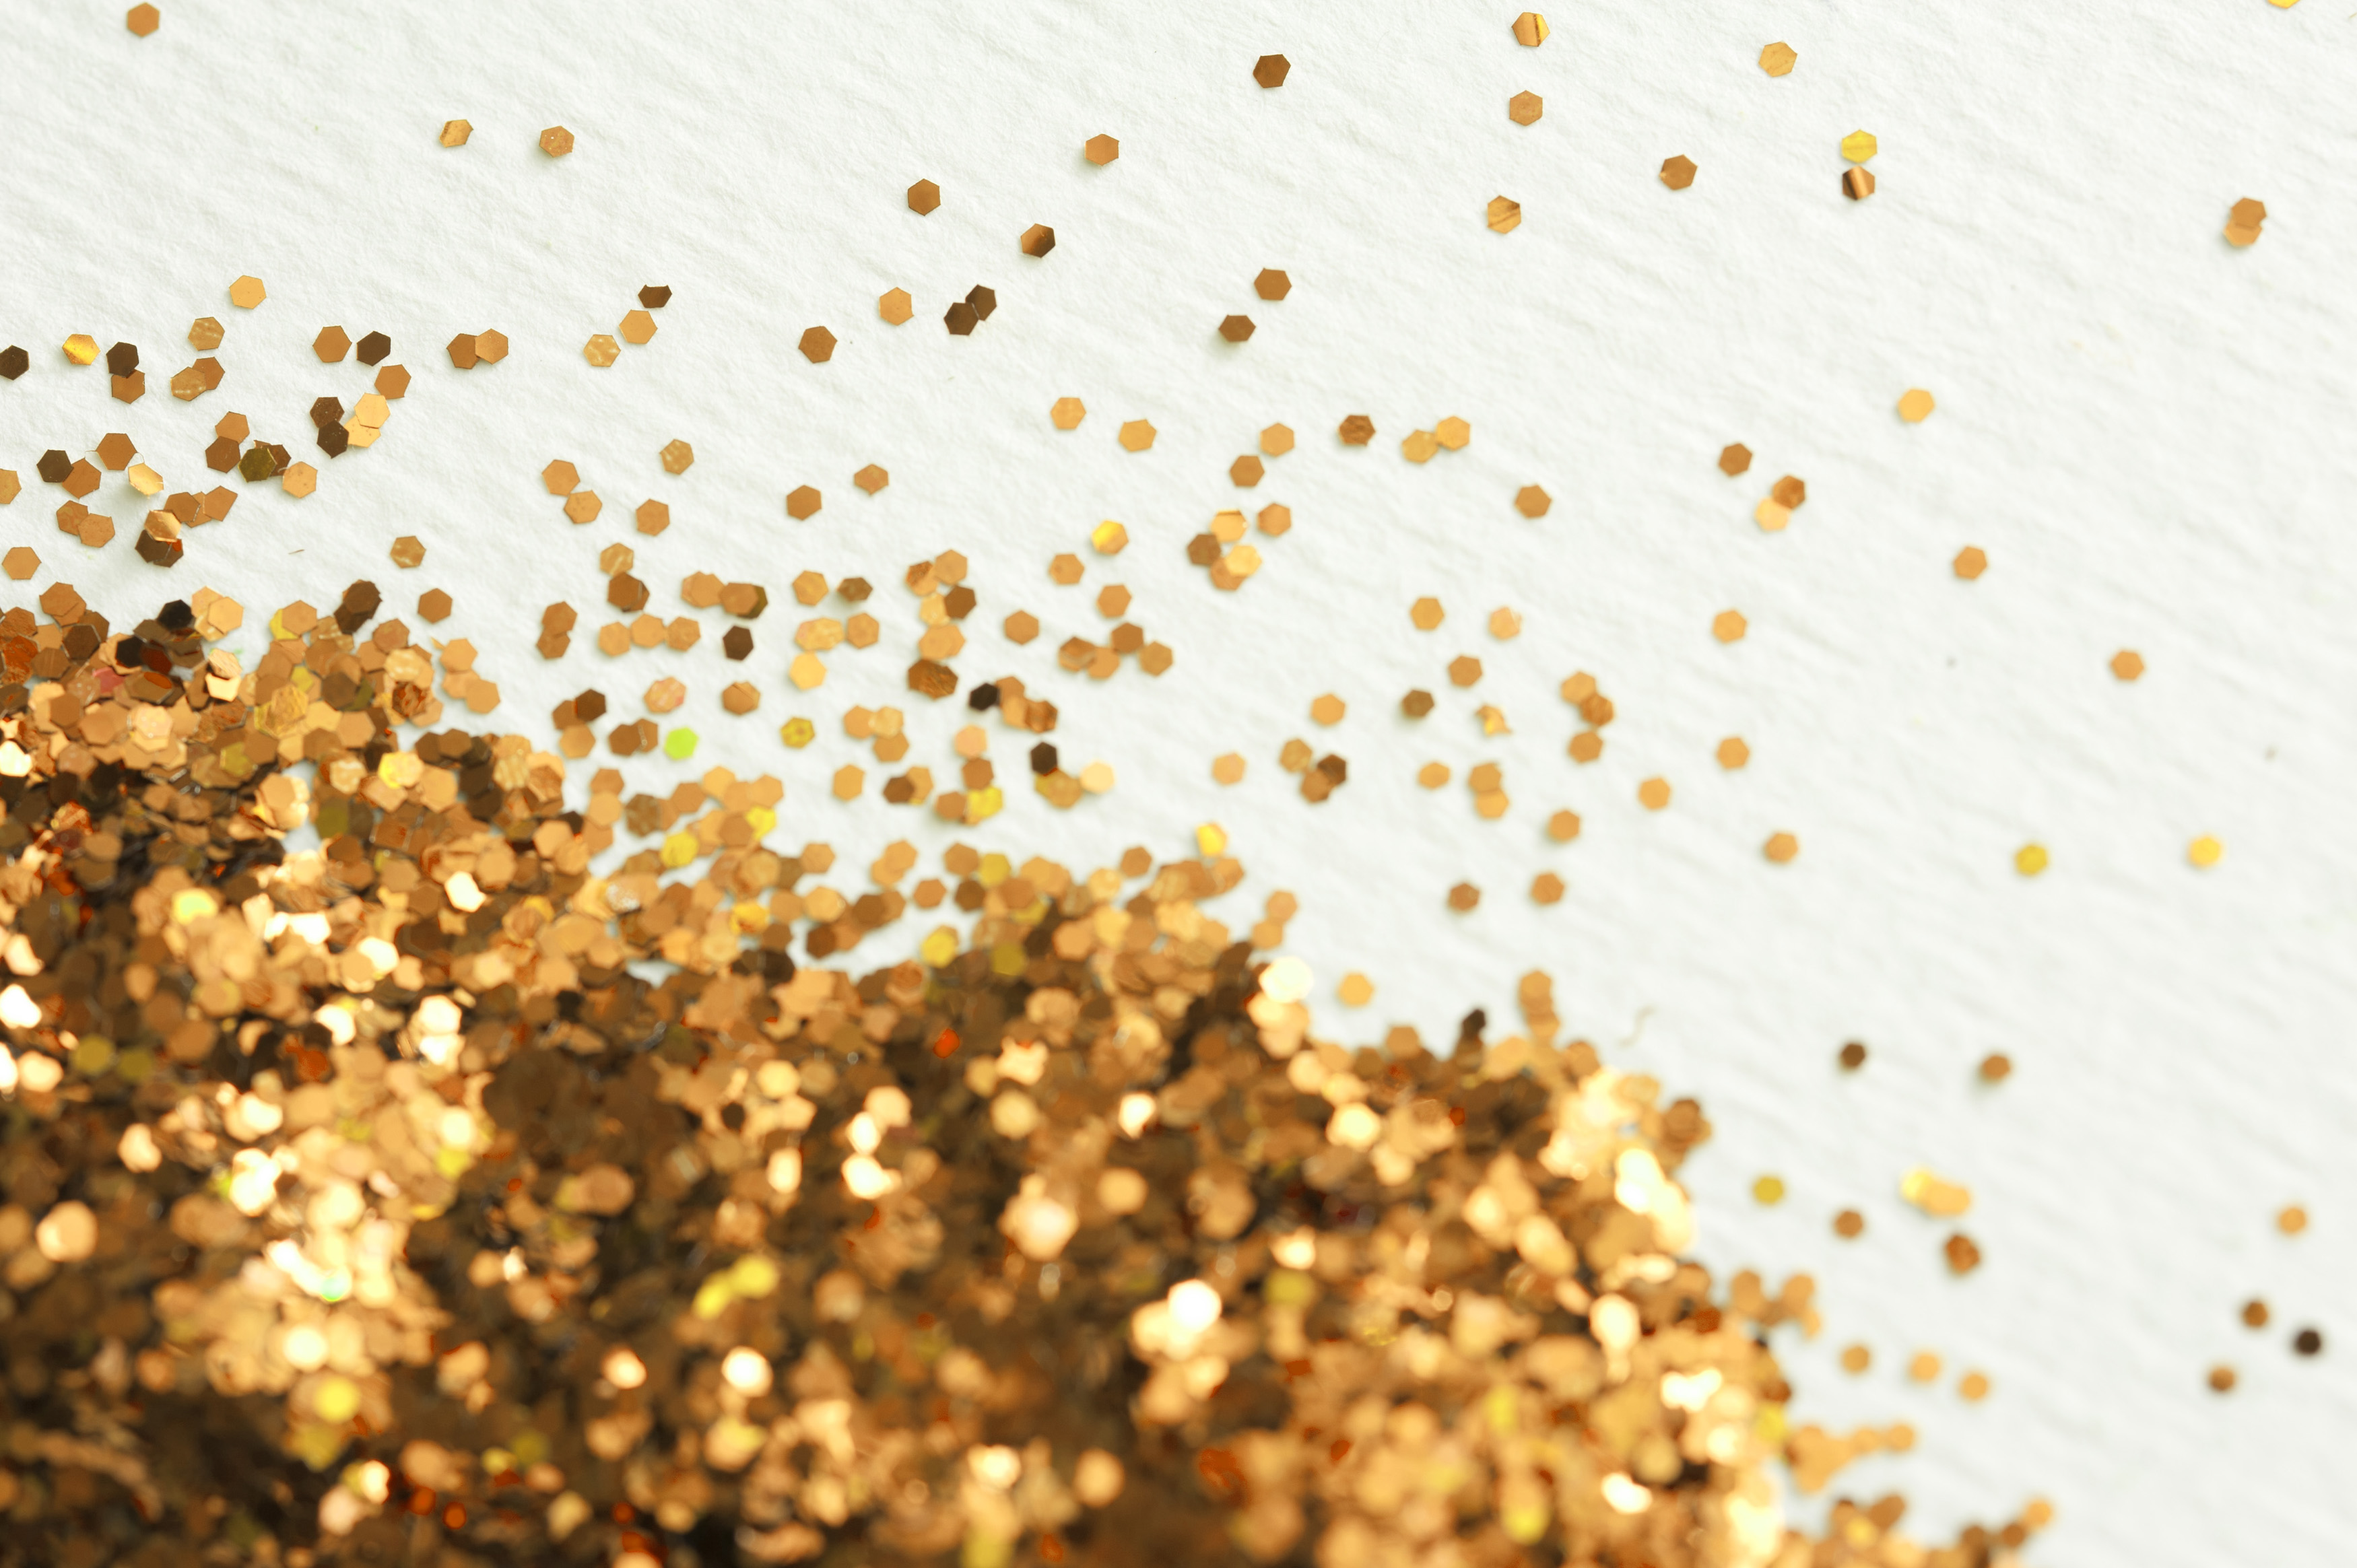 black and gold glitter background tumblr